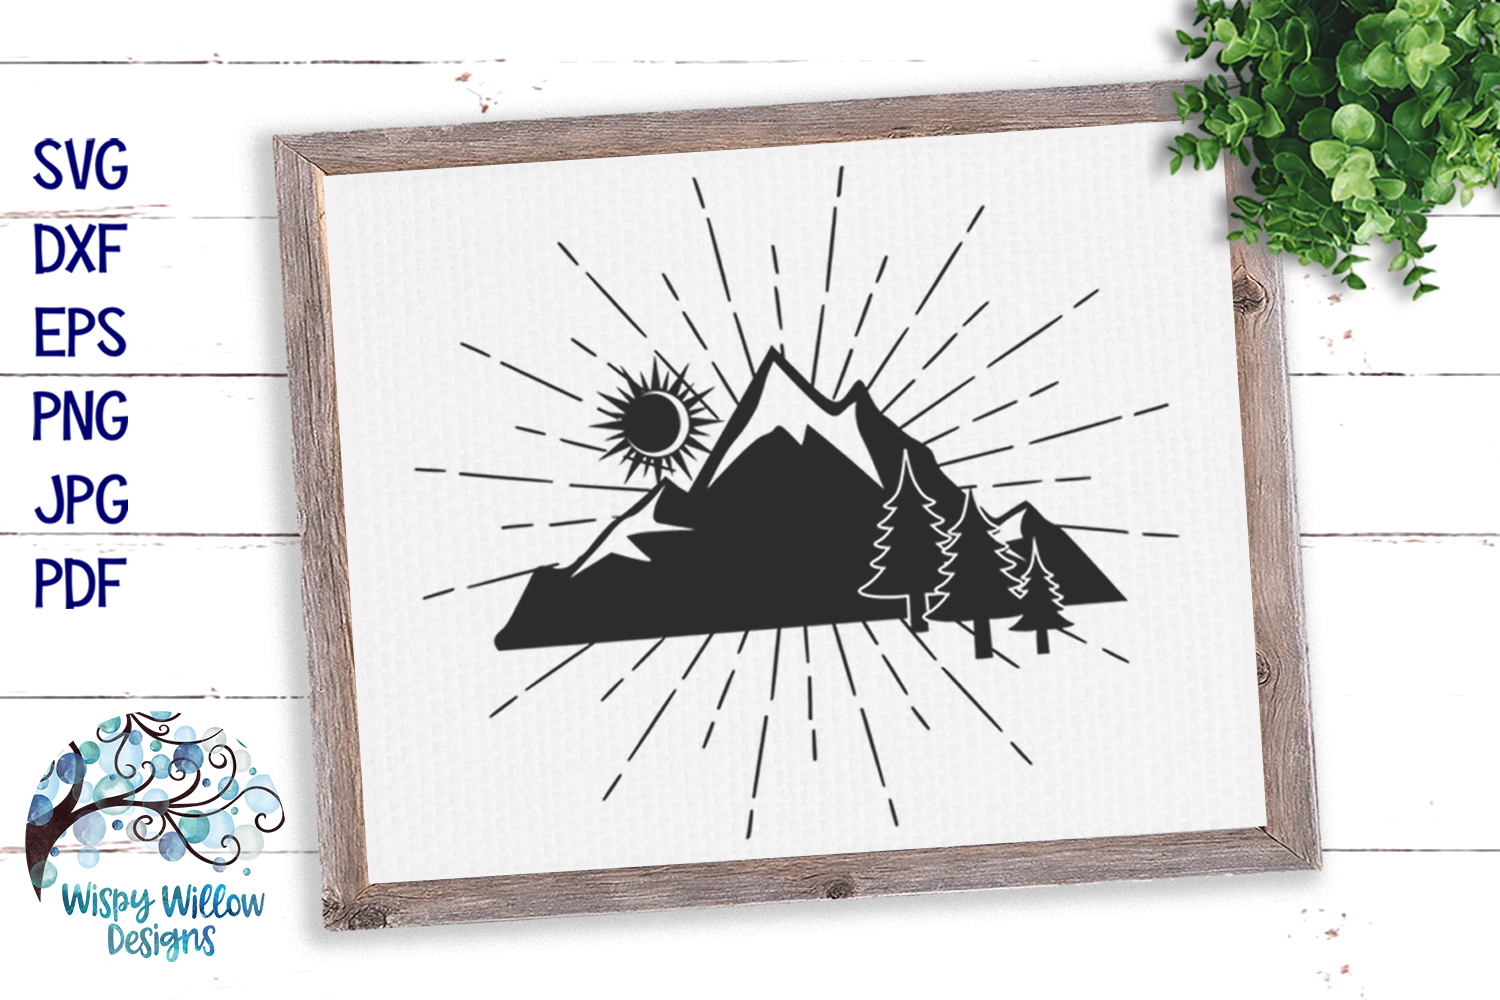 Mountain Silhouette SVG | Outdoors Camping SVG Cut File example image 1